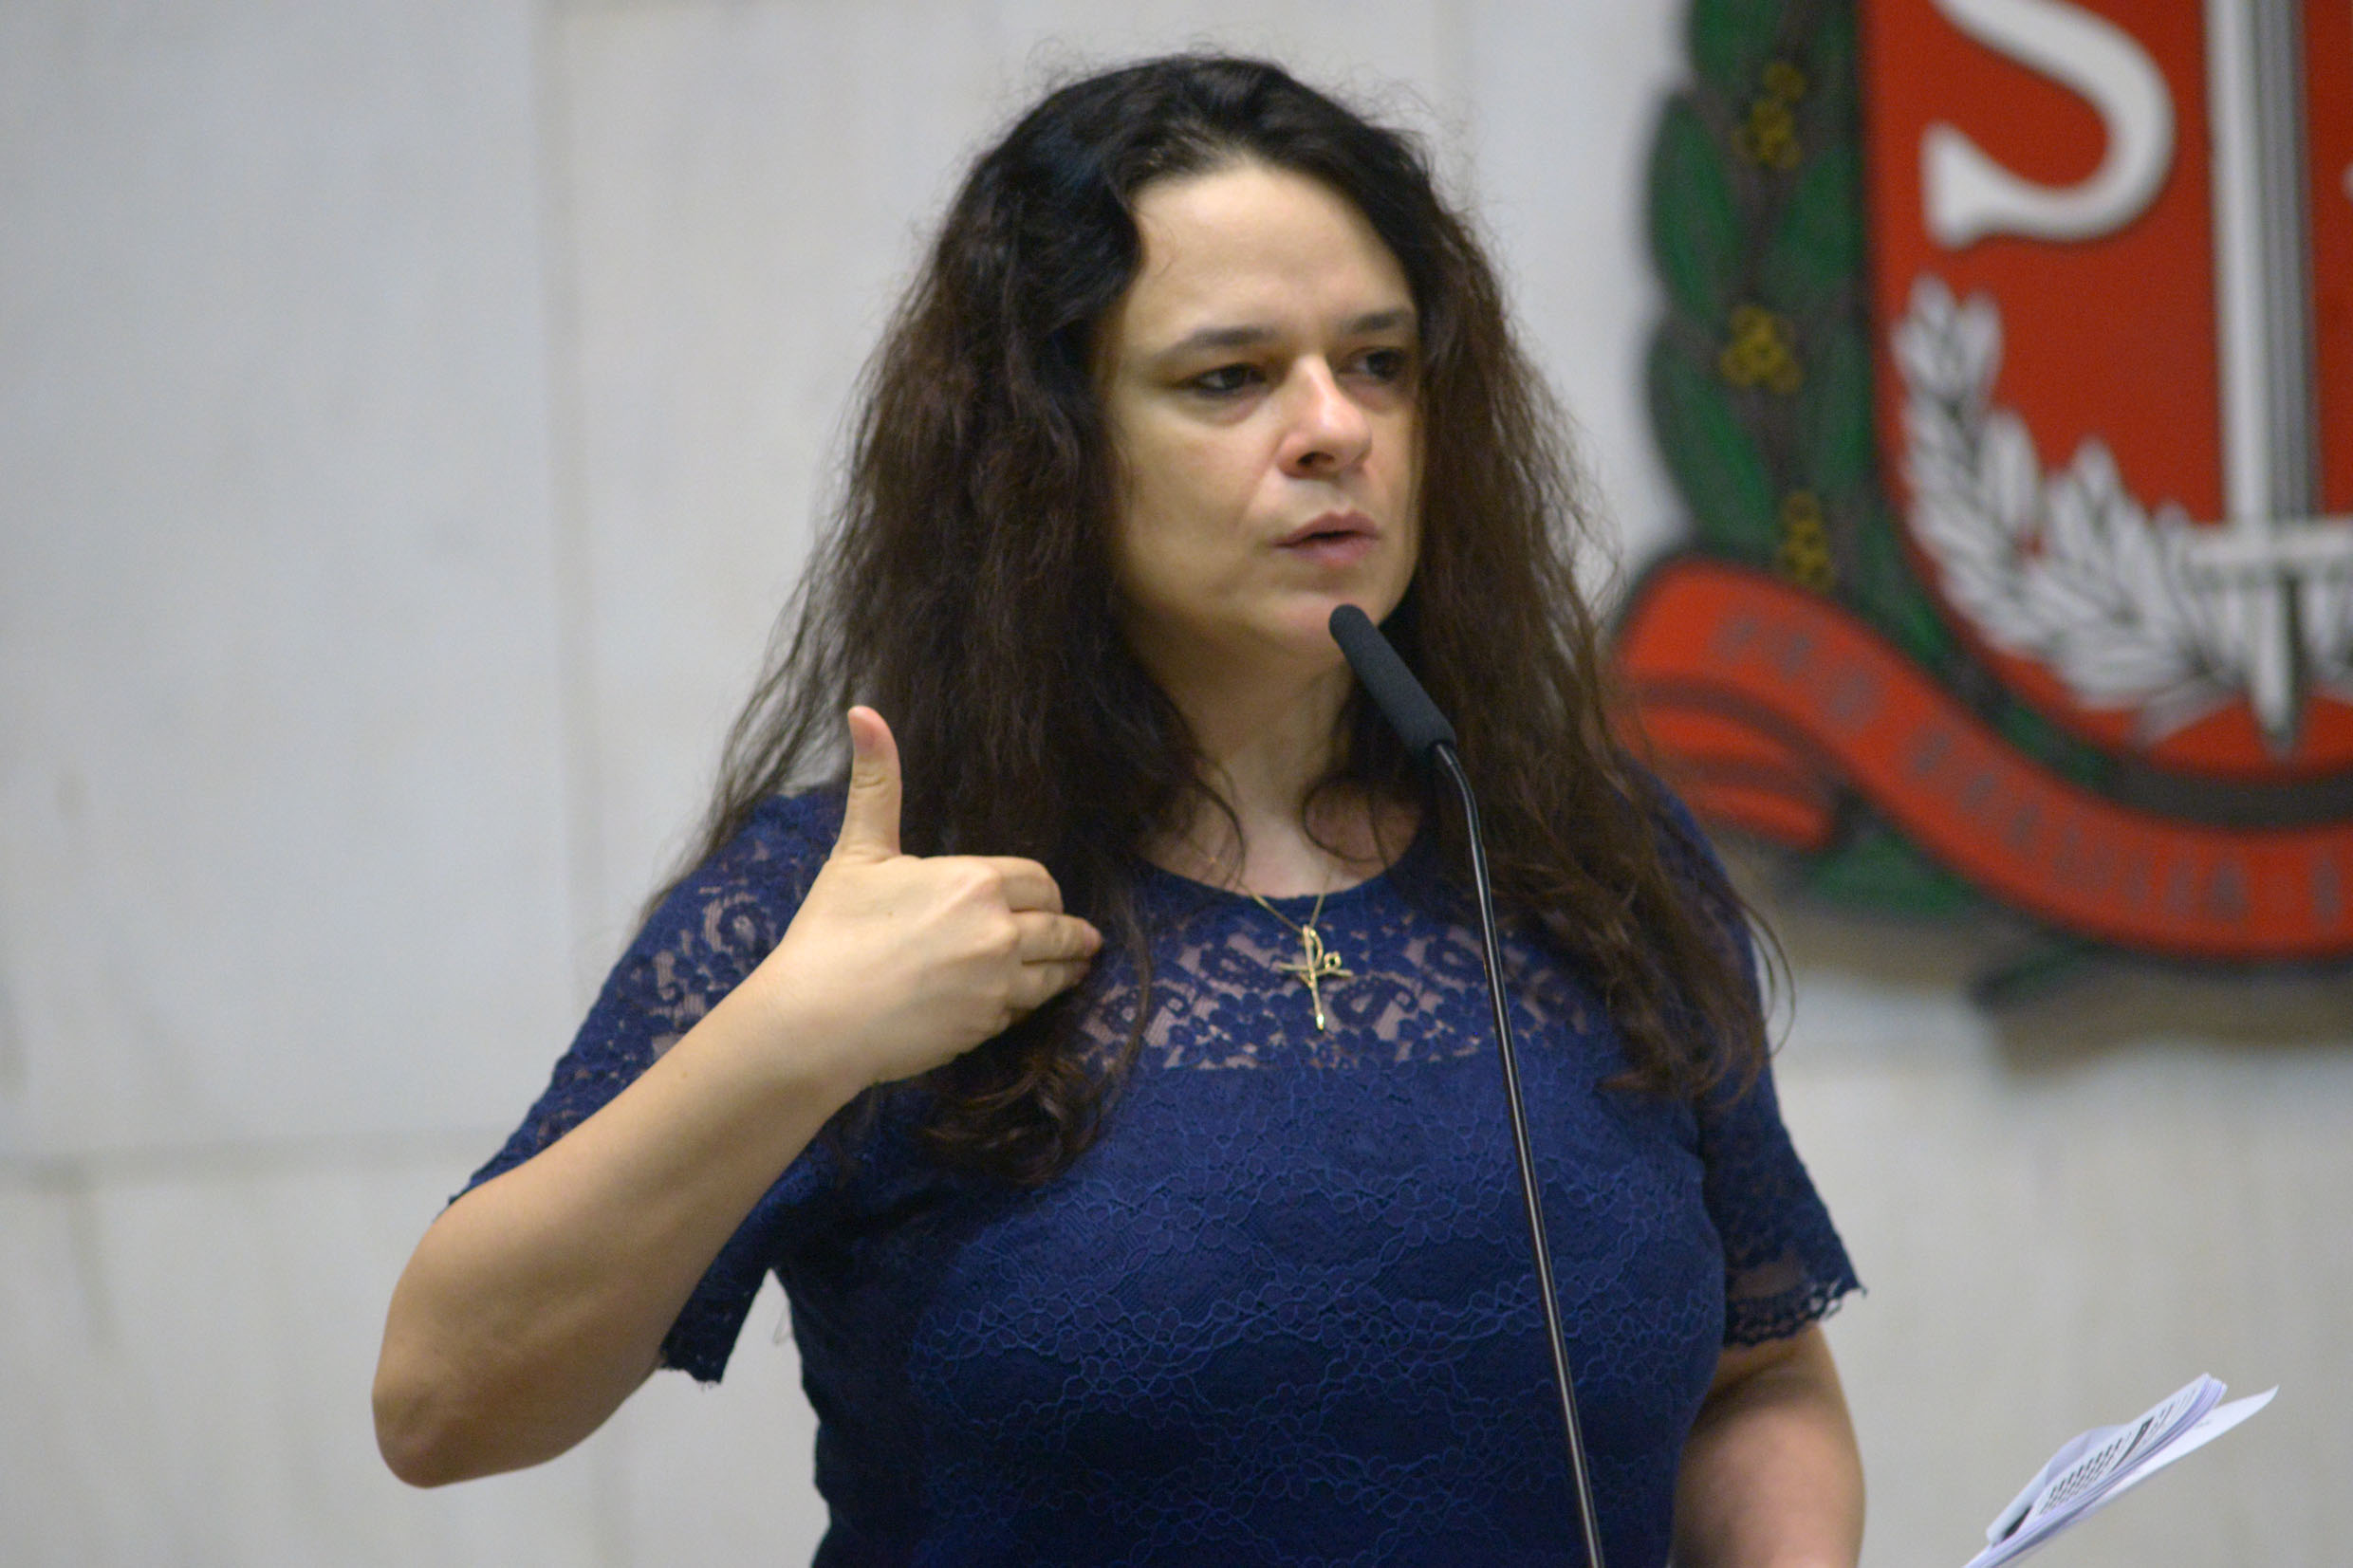 Janaina Paschoal<a style='float:right' href='https://www3.al.sp.gov.br/repositorio/noticia/N-10-2019/fg242928.jpg' target=_blank><img src='/_img/material-file-download-white.png' width='14px' alt='Clique para baixar a imagem'></a>